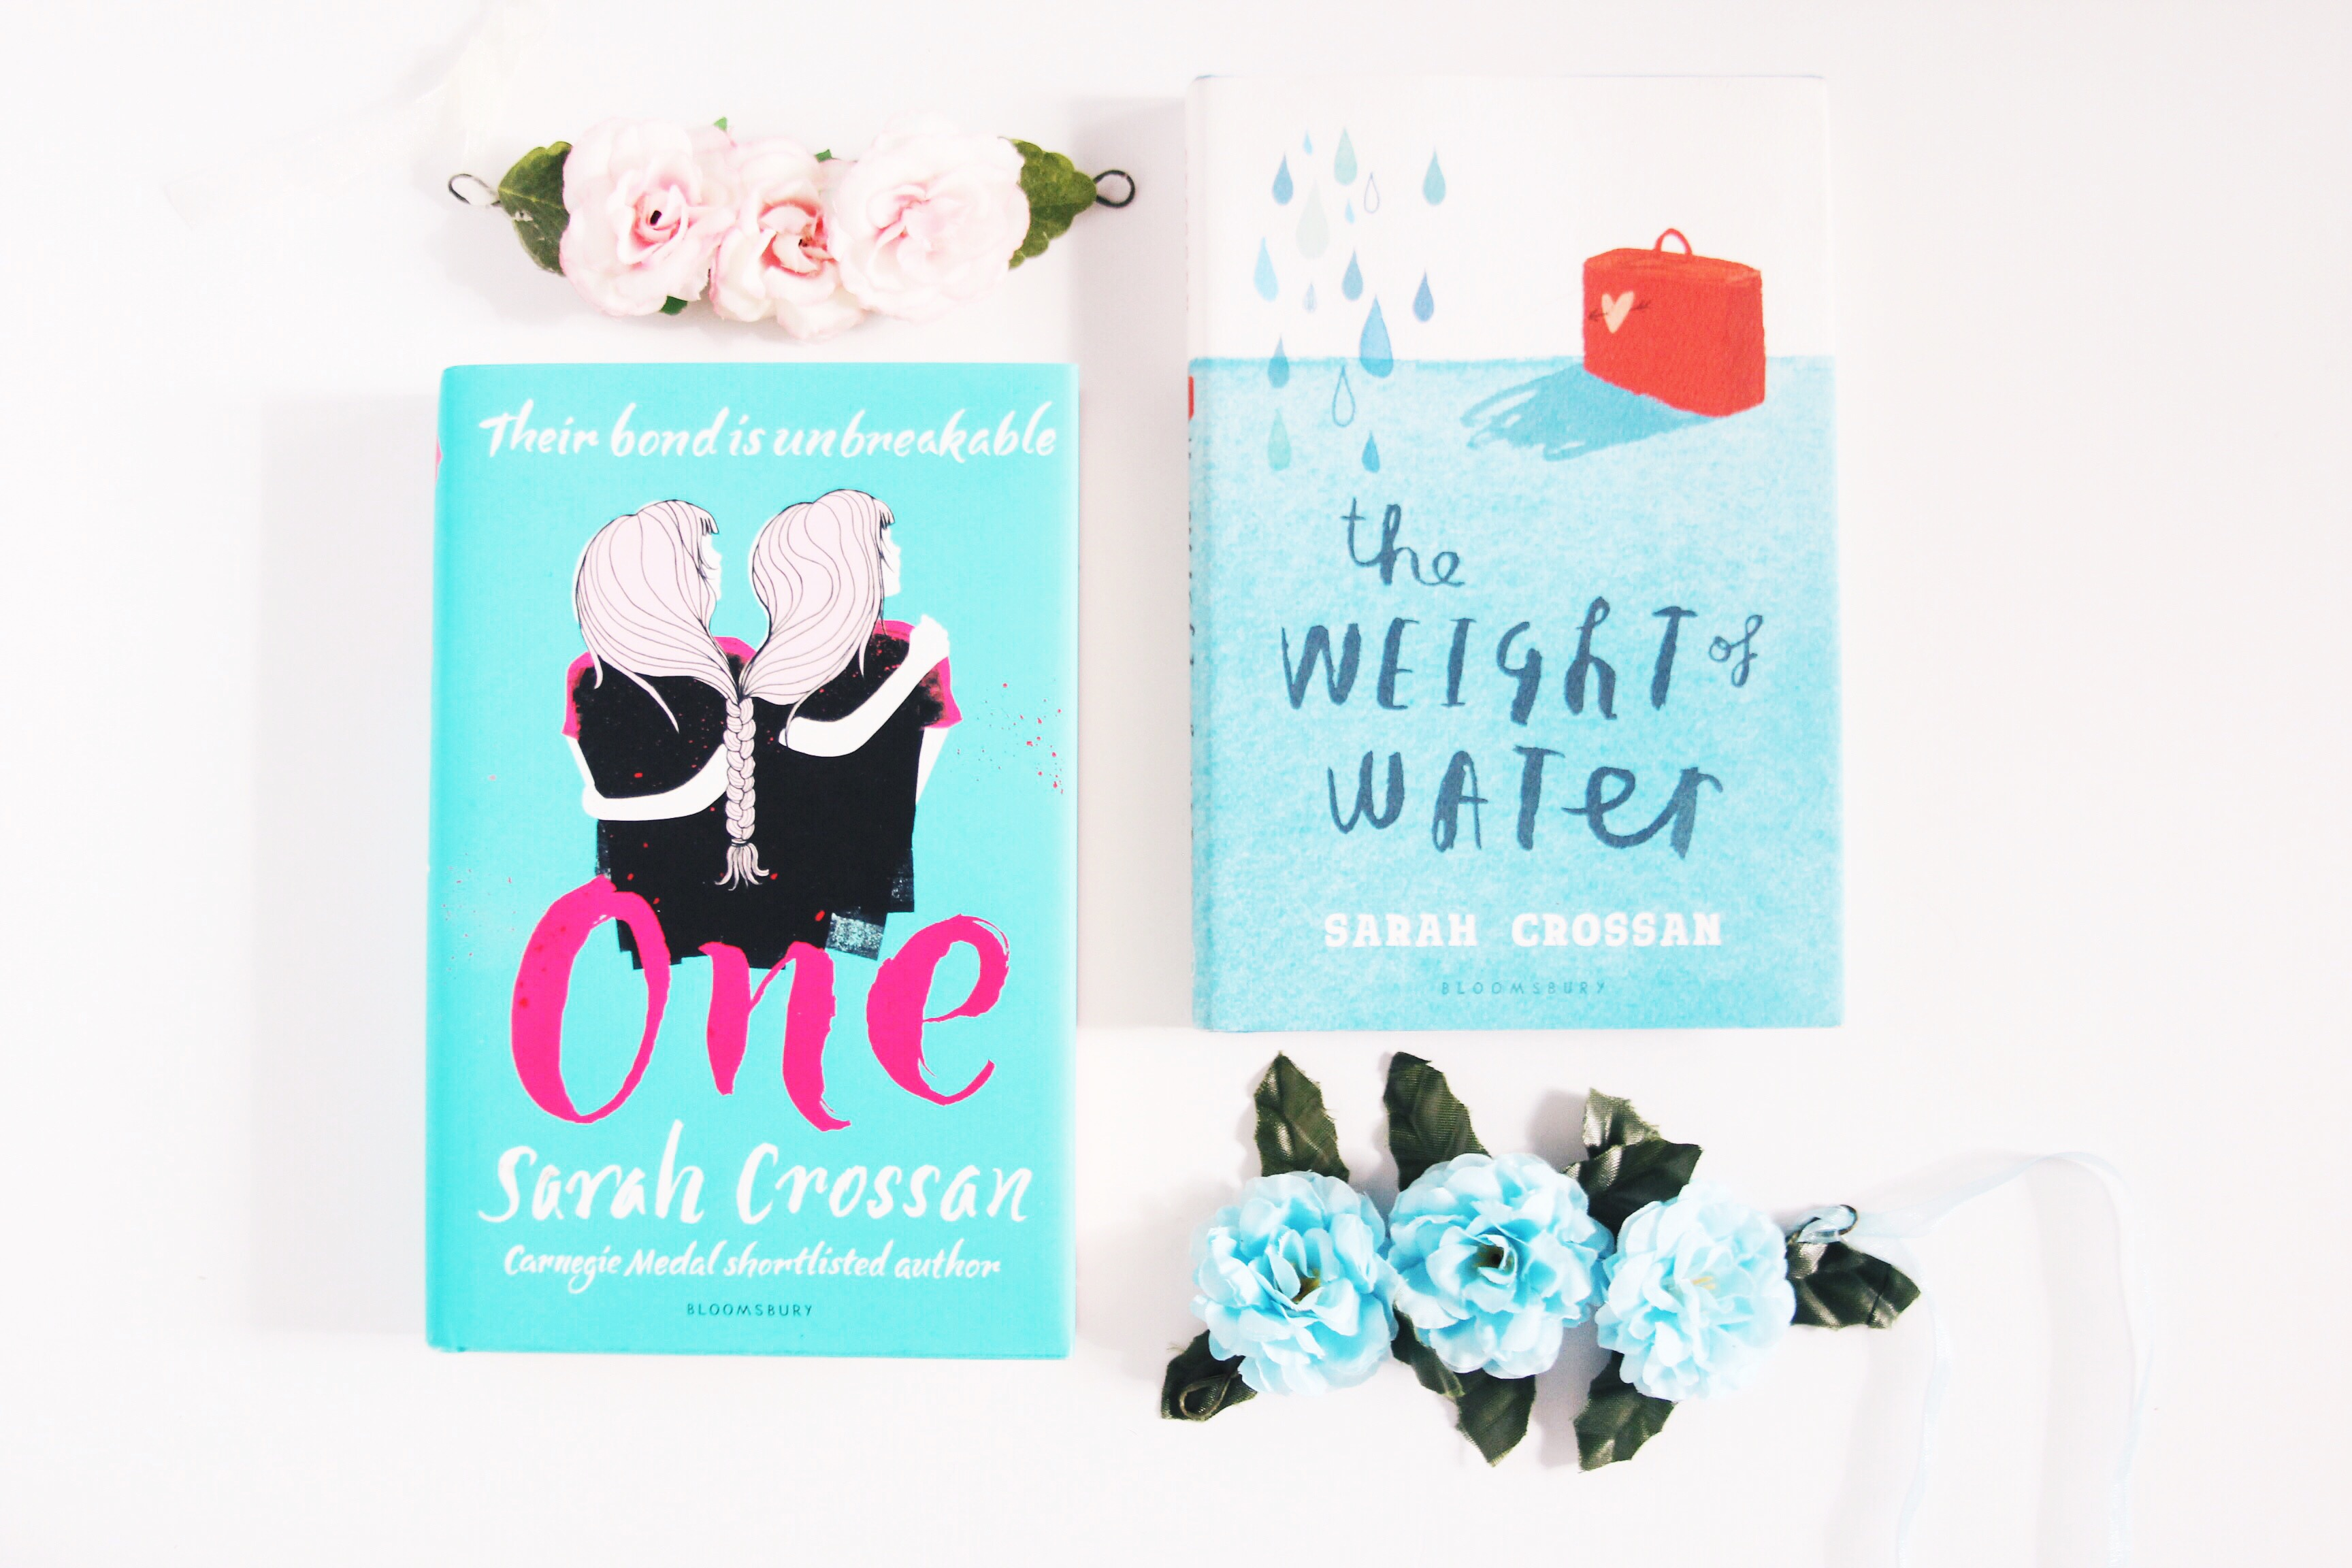 one-and-the-weight-of-water-by-sarah-crossan